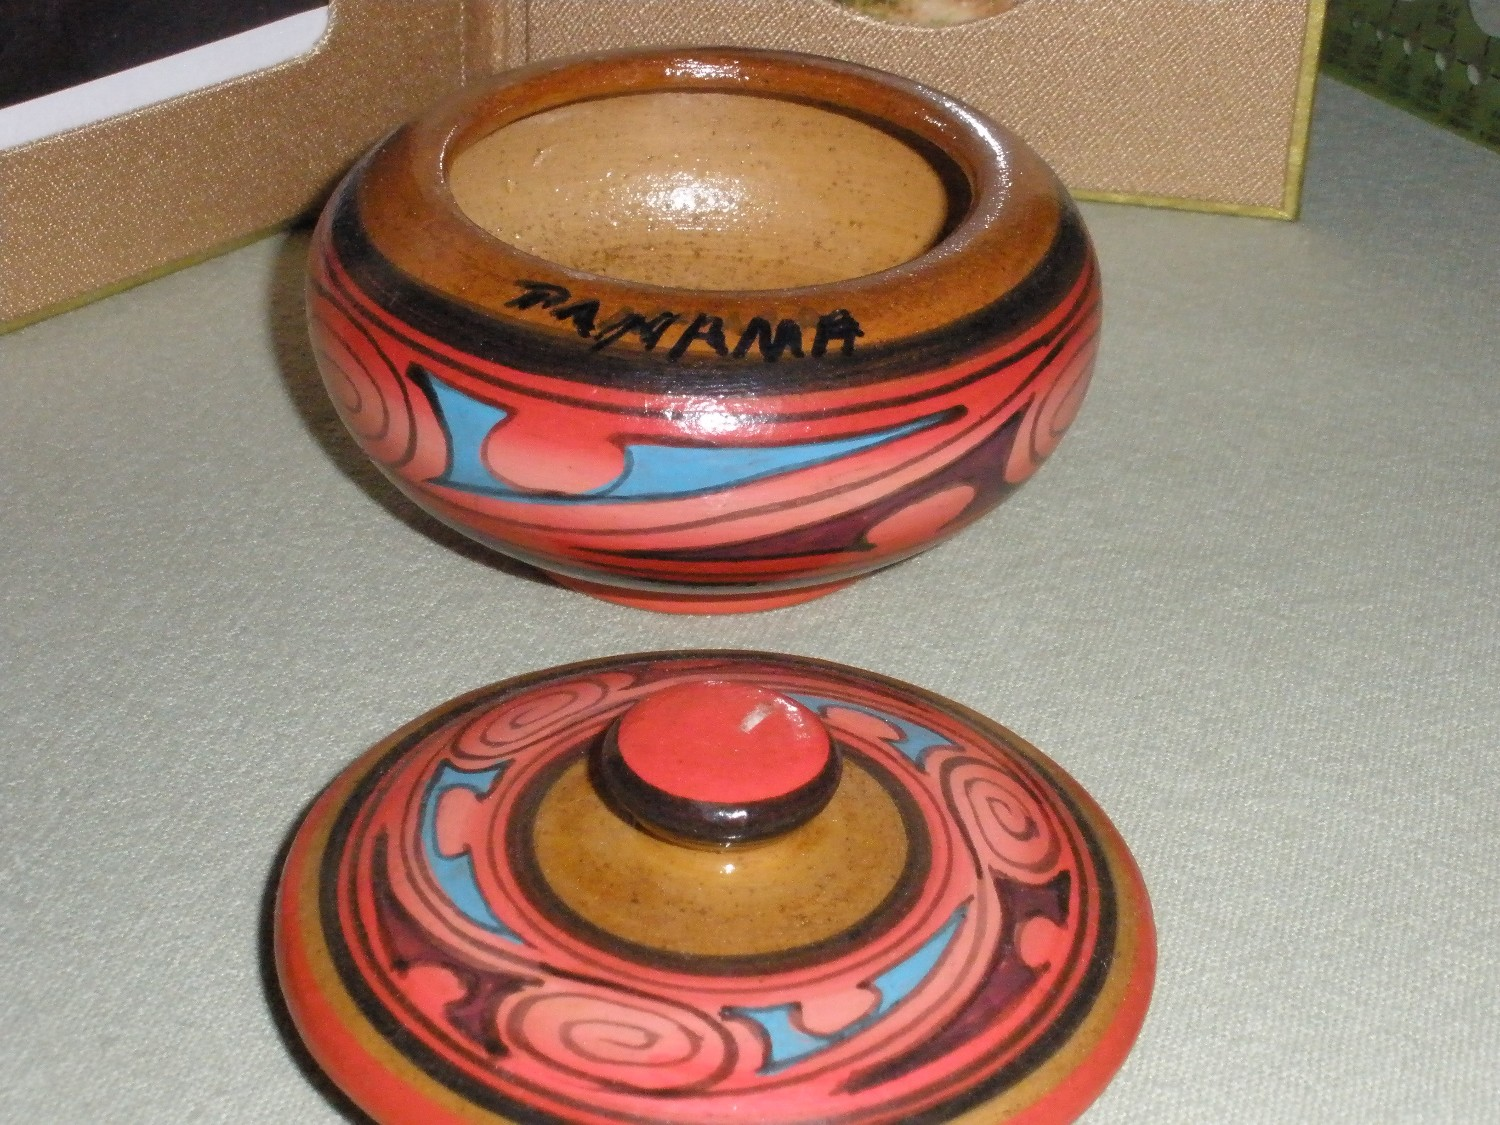 souvenir+typical+handcrafted+bowl